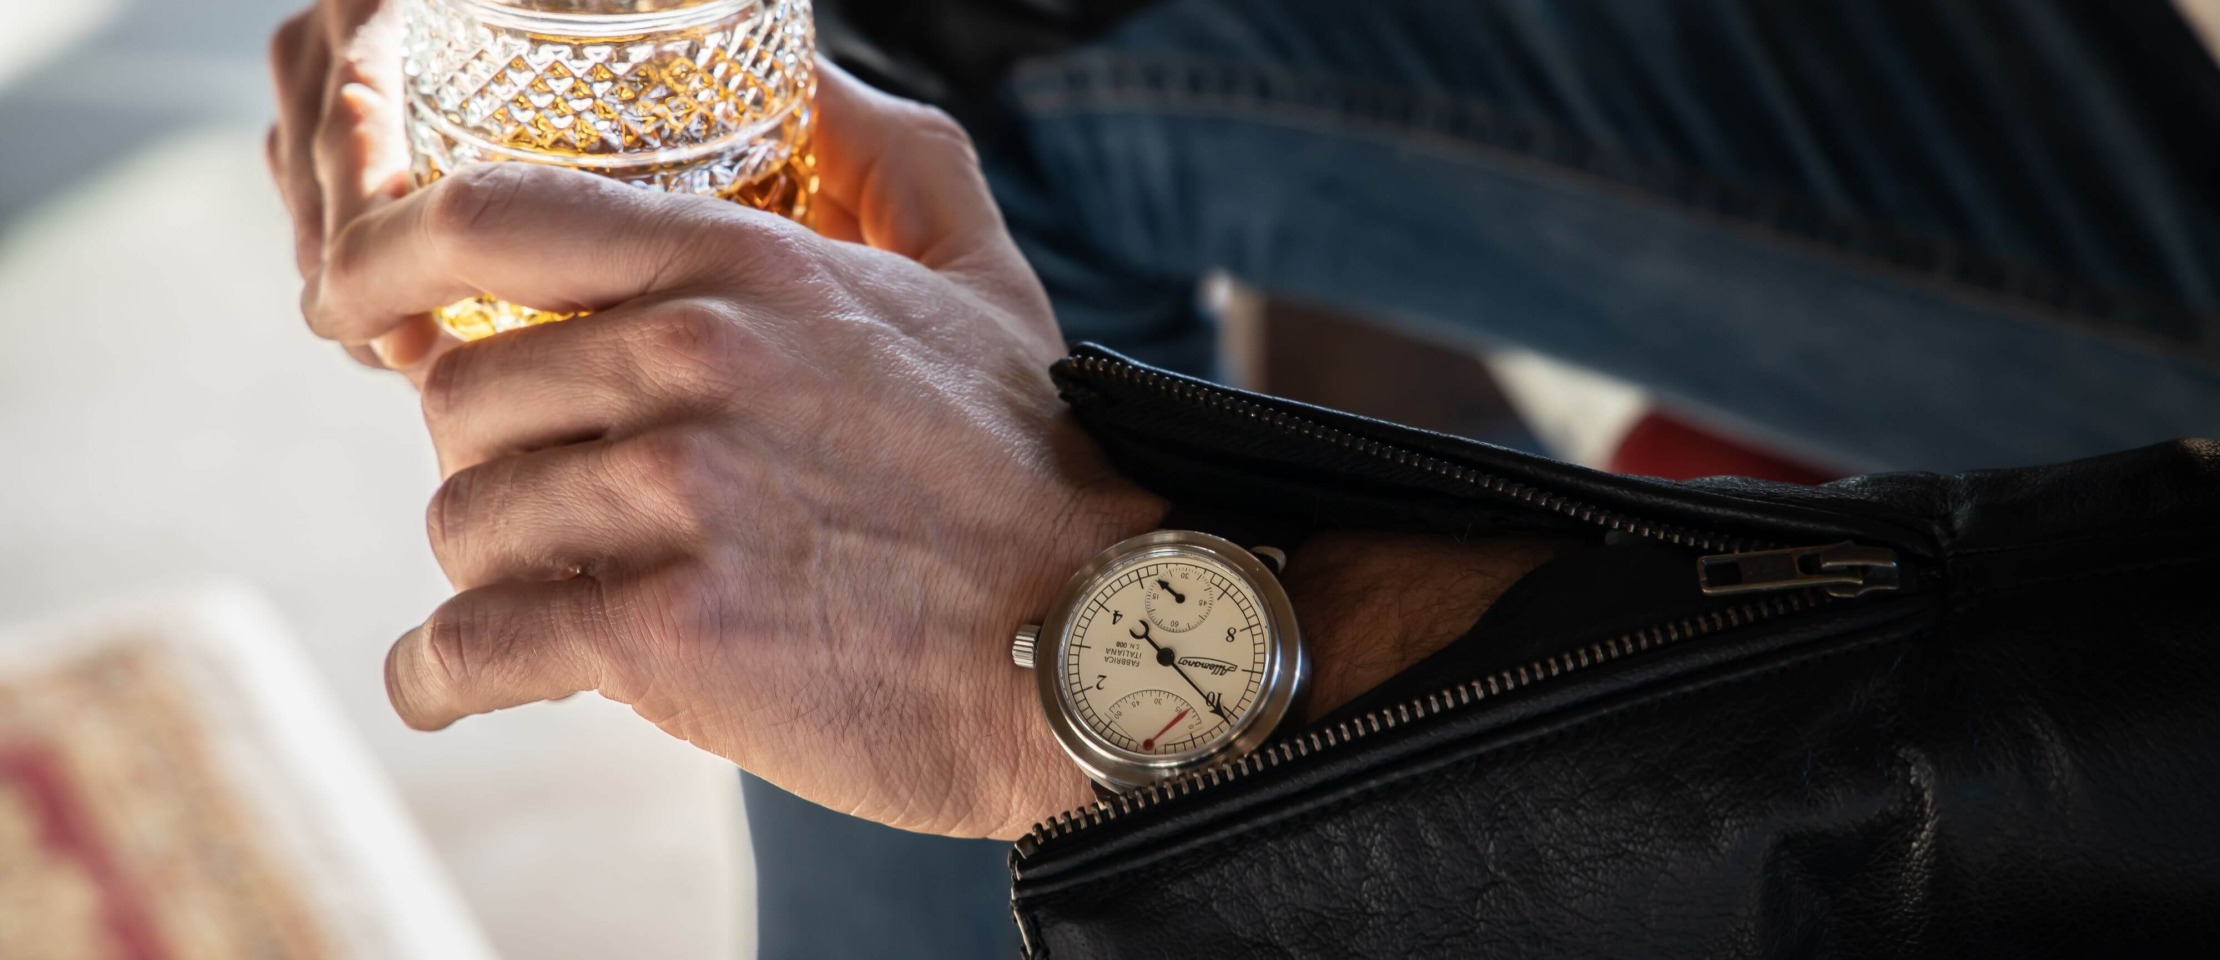 Behind the Brand: Talking to the CEO of Allemano Watches